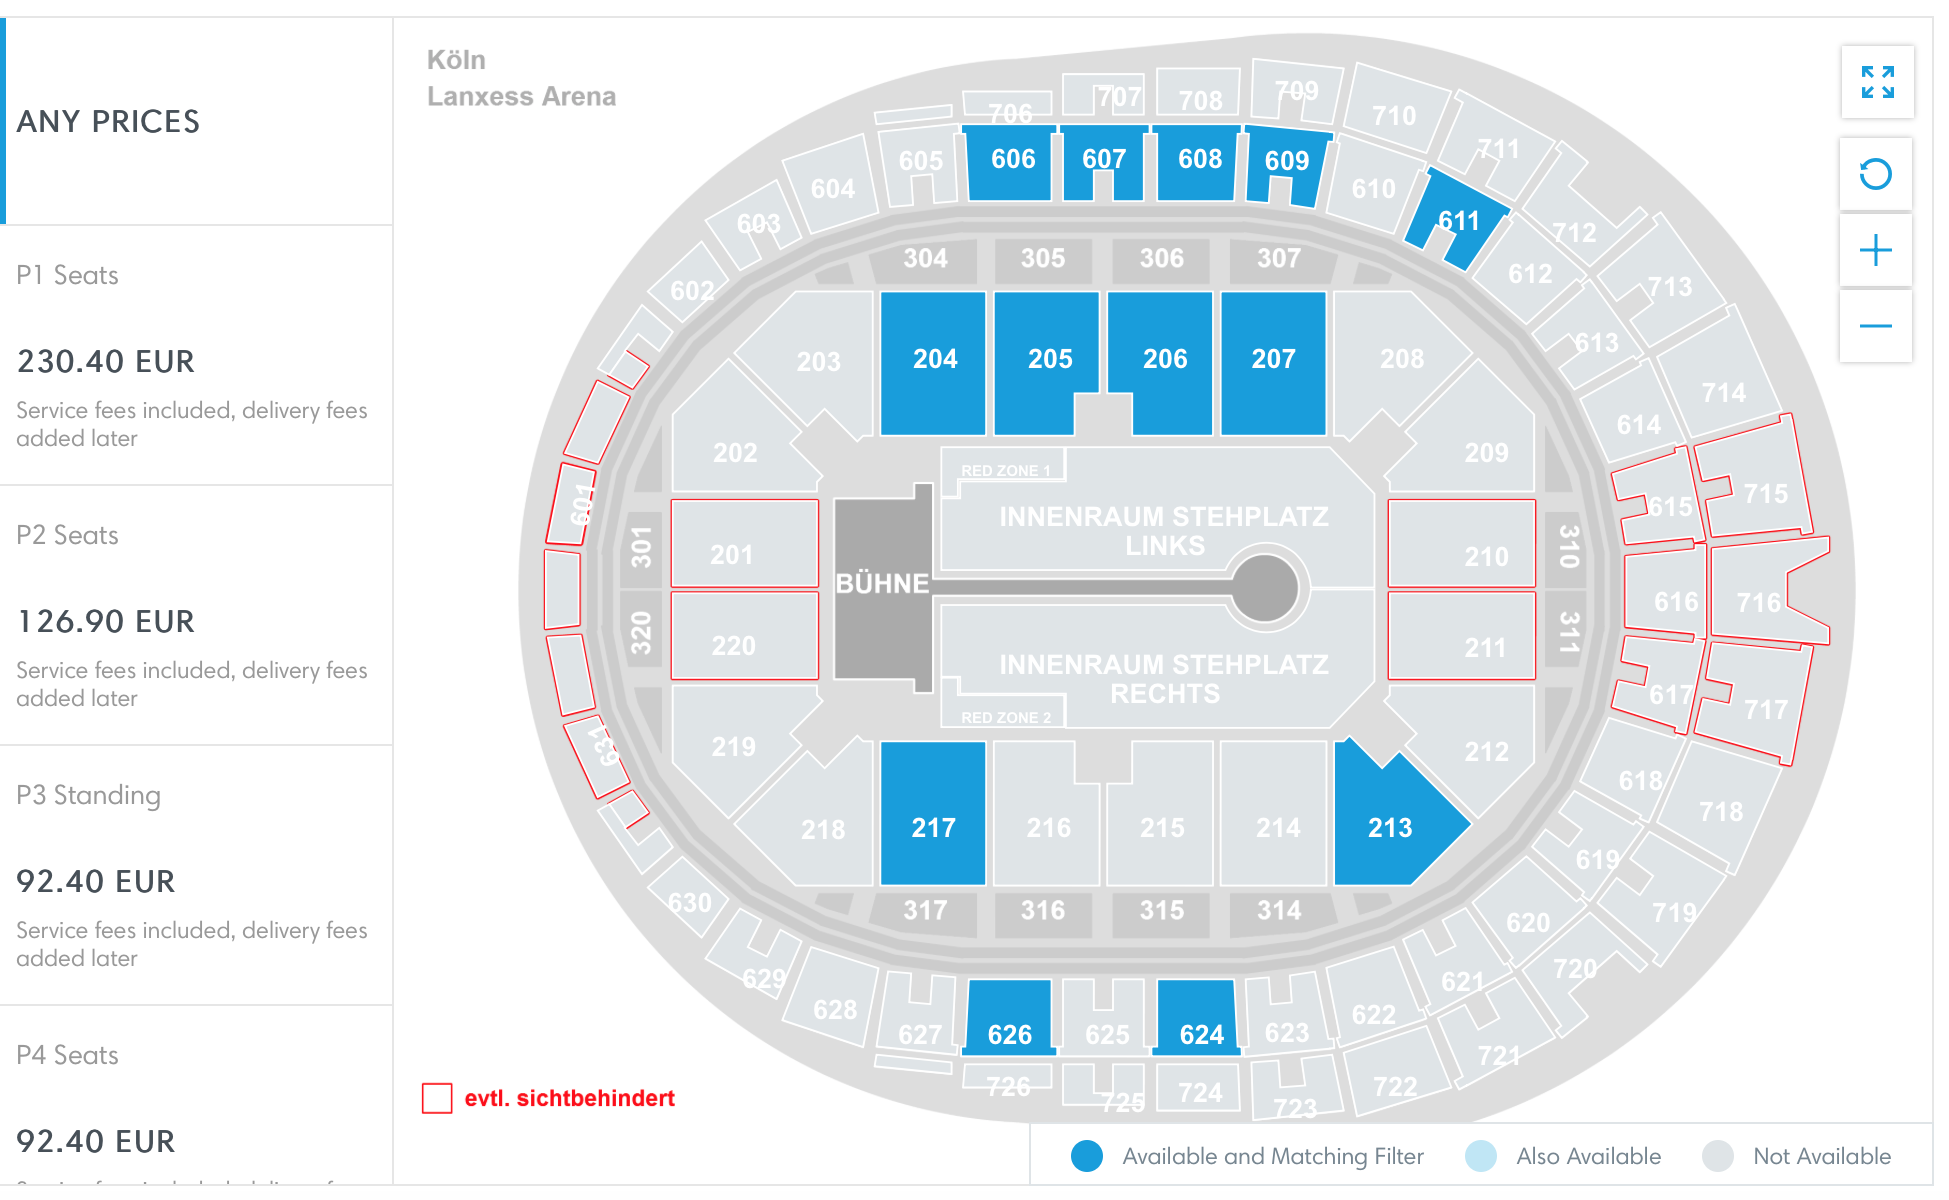 lanxess arena seating chart